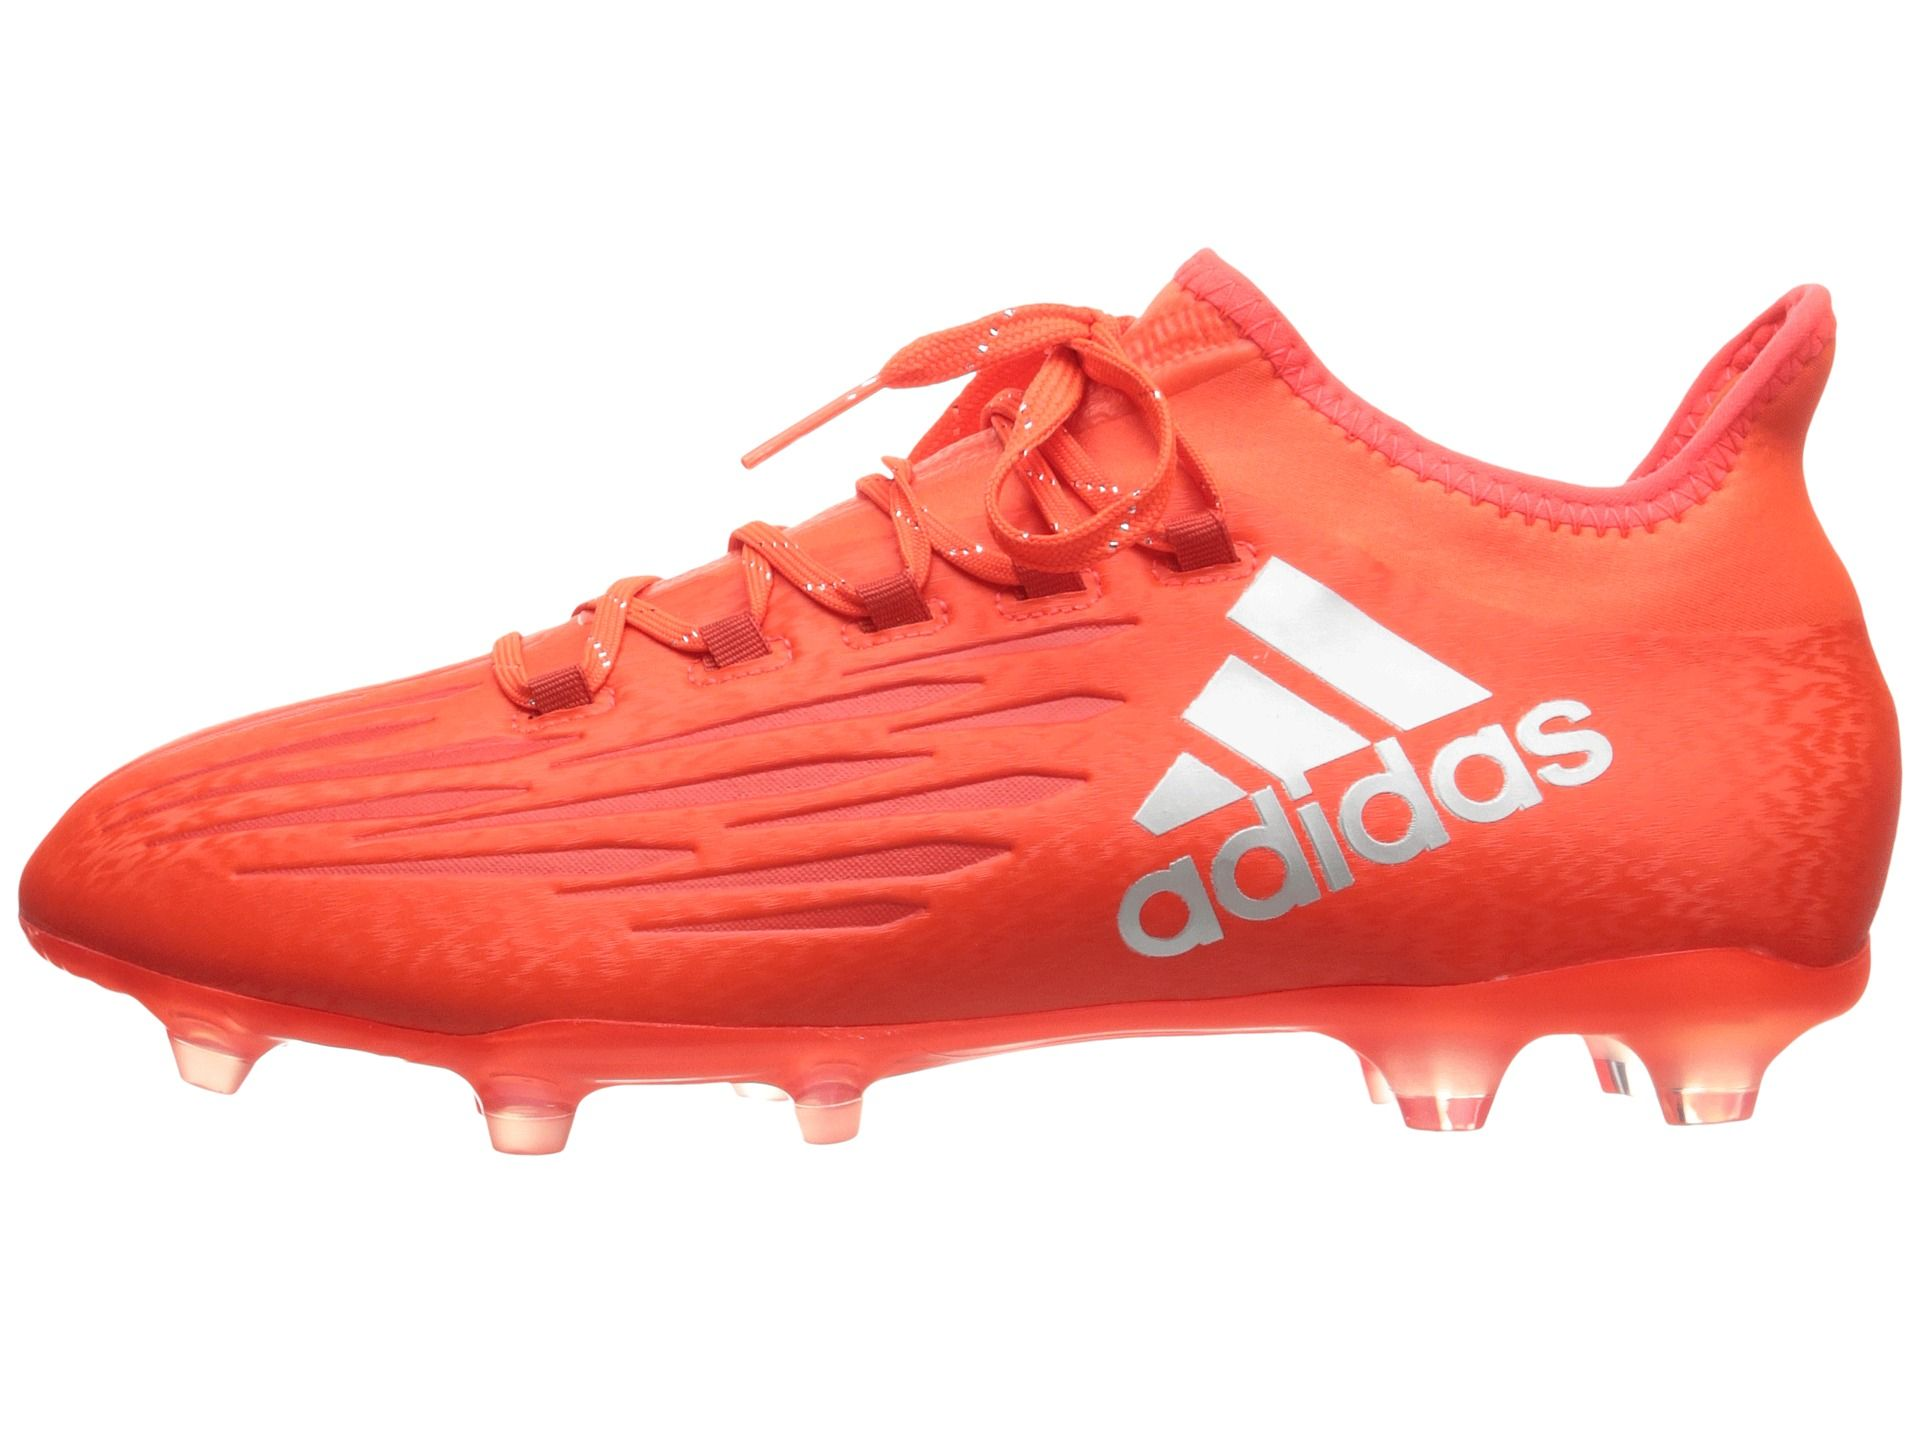 new concept a22b6 fe253 ... the adidas ace 16+ purecontrol paris pack football boots introduce a  striking design in blue